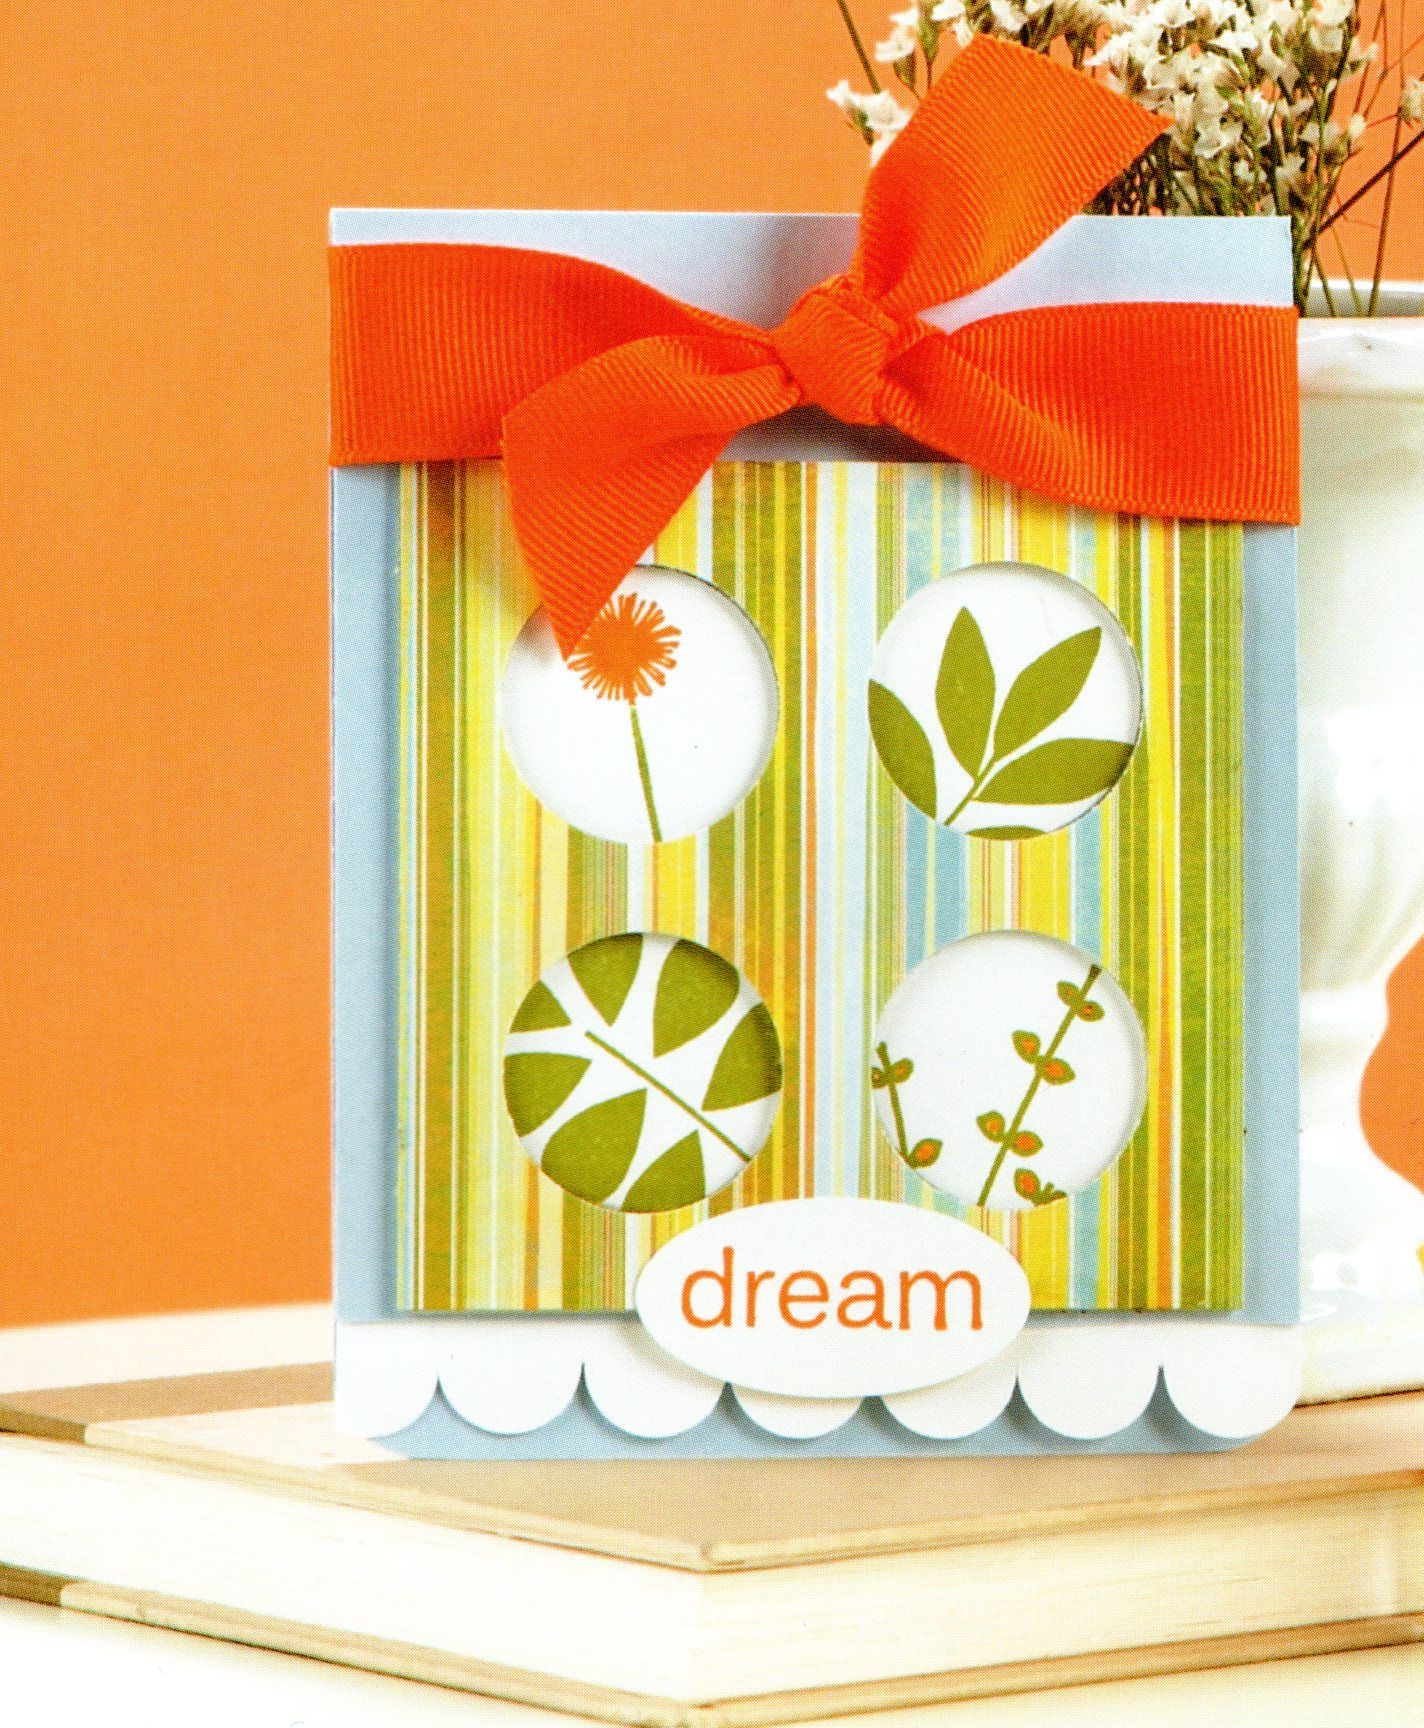 Dream card with flowers in circles